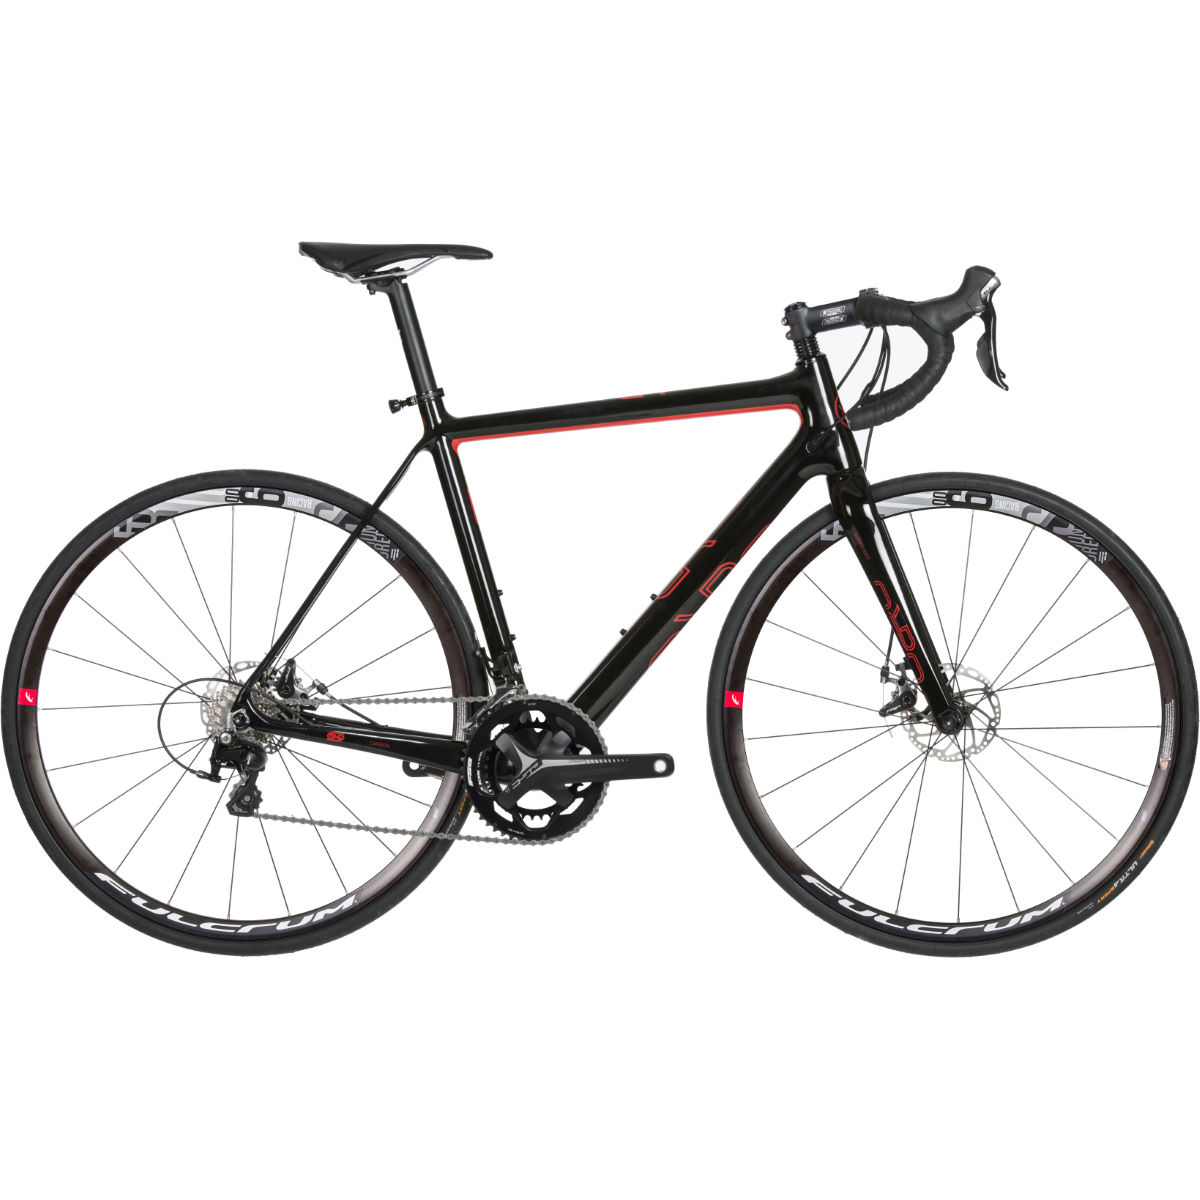 Orro PYRO Disc 105 Racing (2019) Bike - Bicicletas de carretera